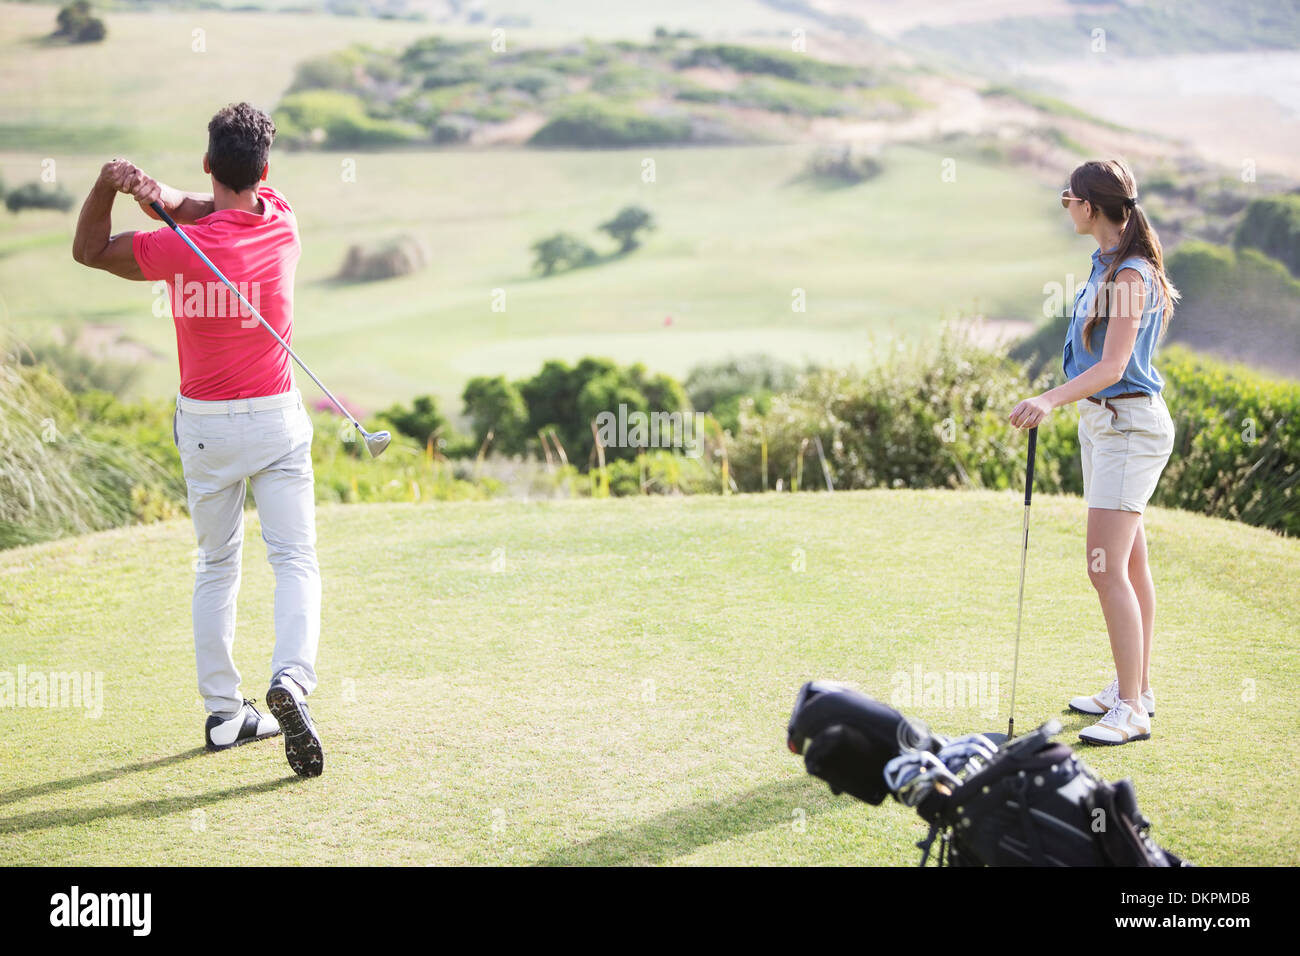 Couple teeing off on golf course - Stock Image